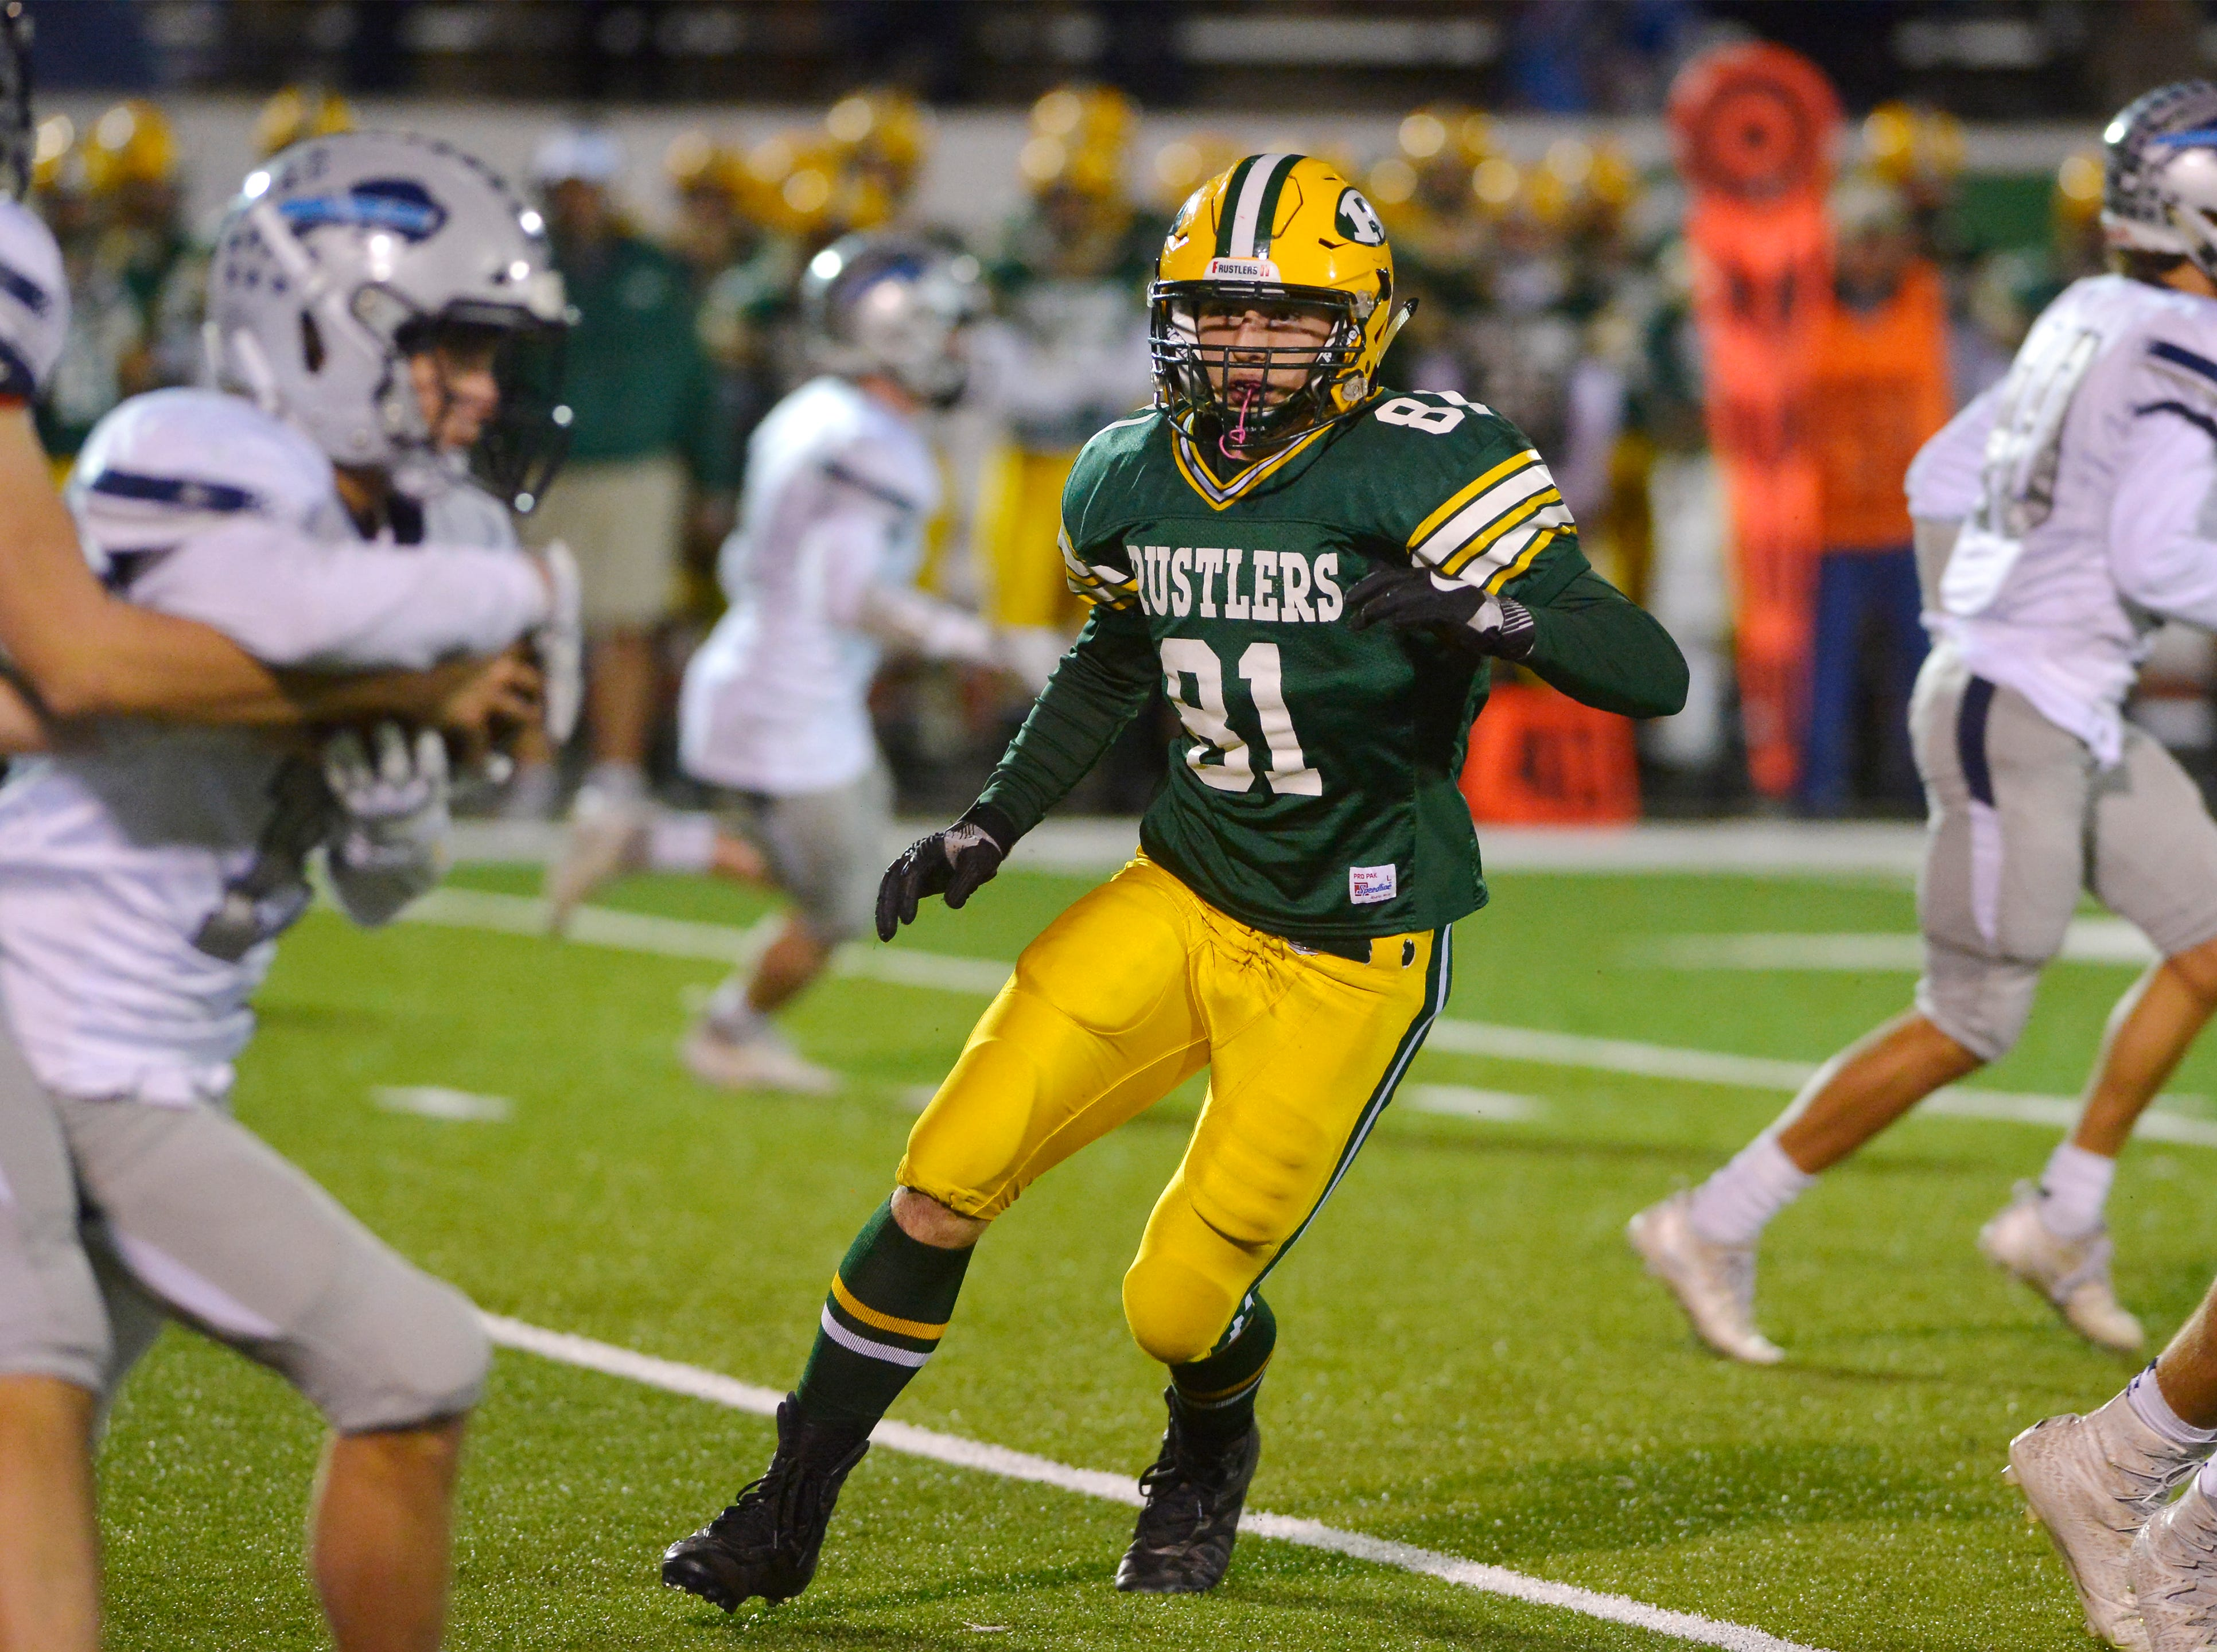 CMR's Hunter Clark looks for the ball carrier during the crosstown football game between Great Falls High and CMR on Friday night at Memorial Stadium.